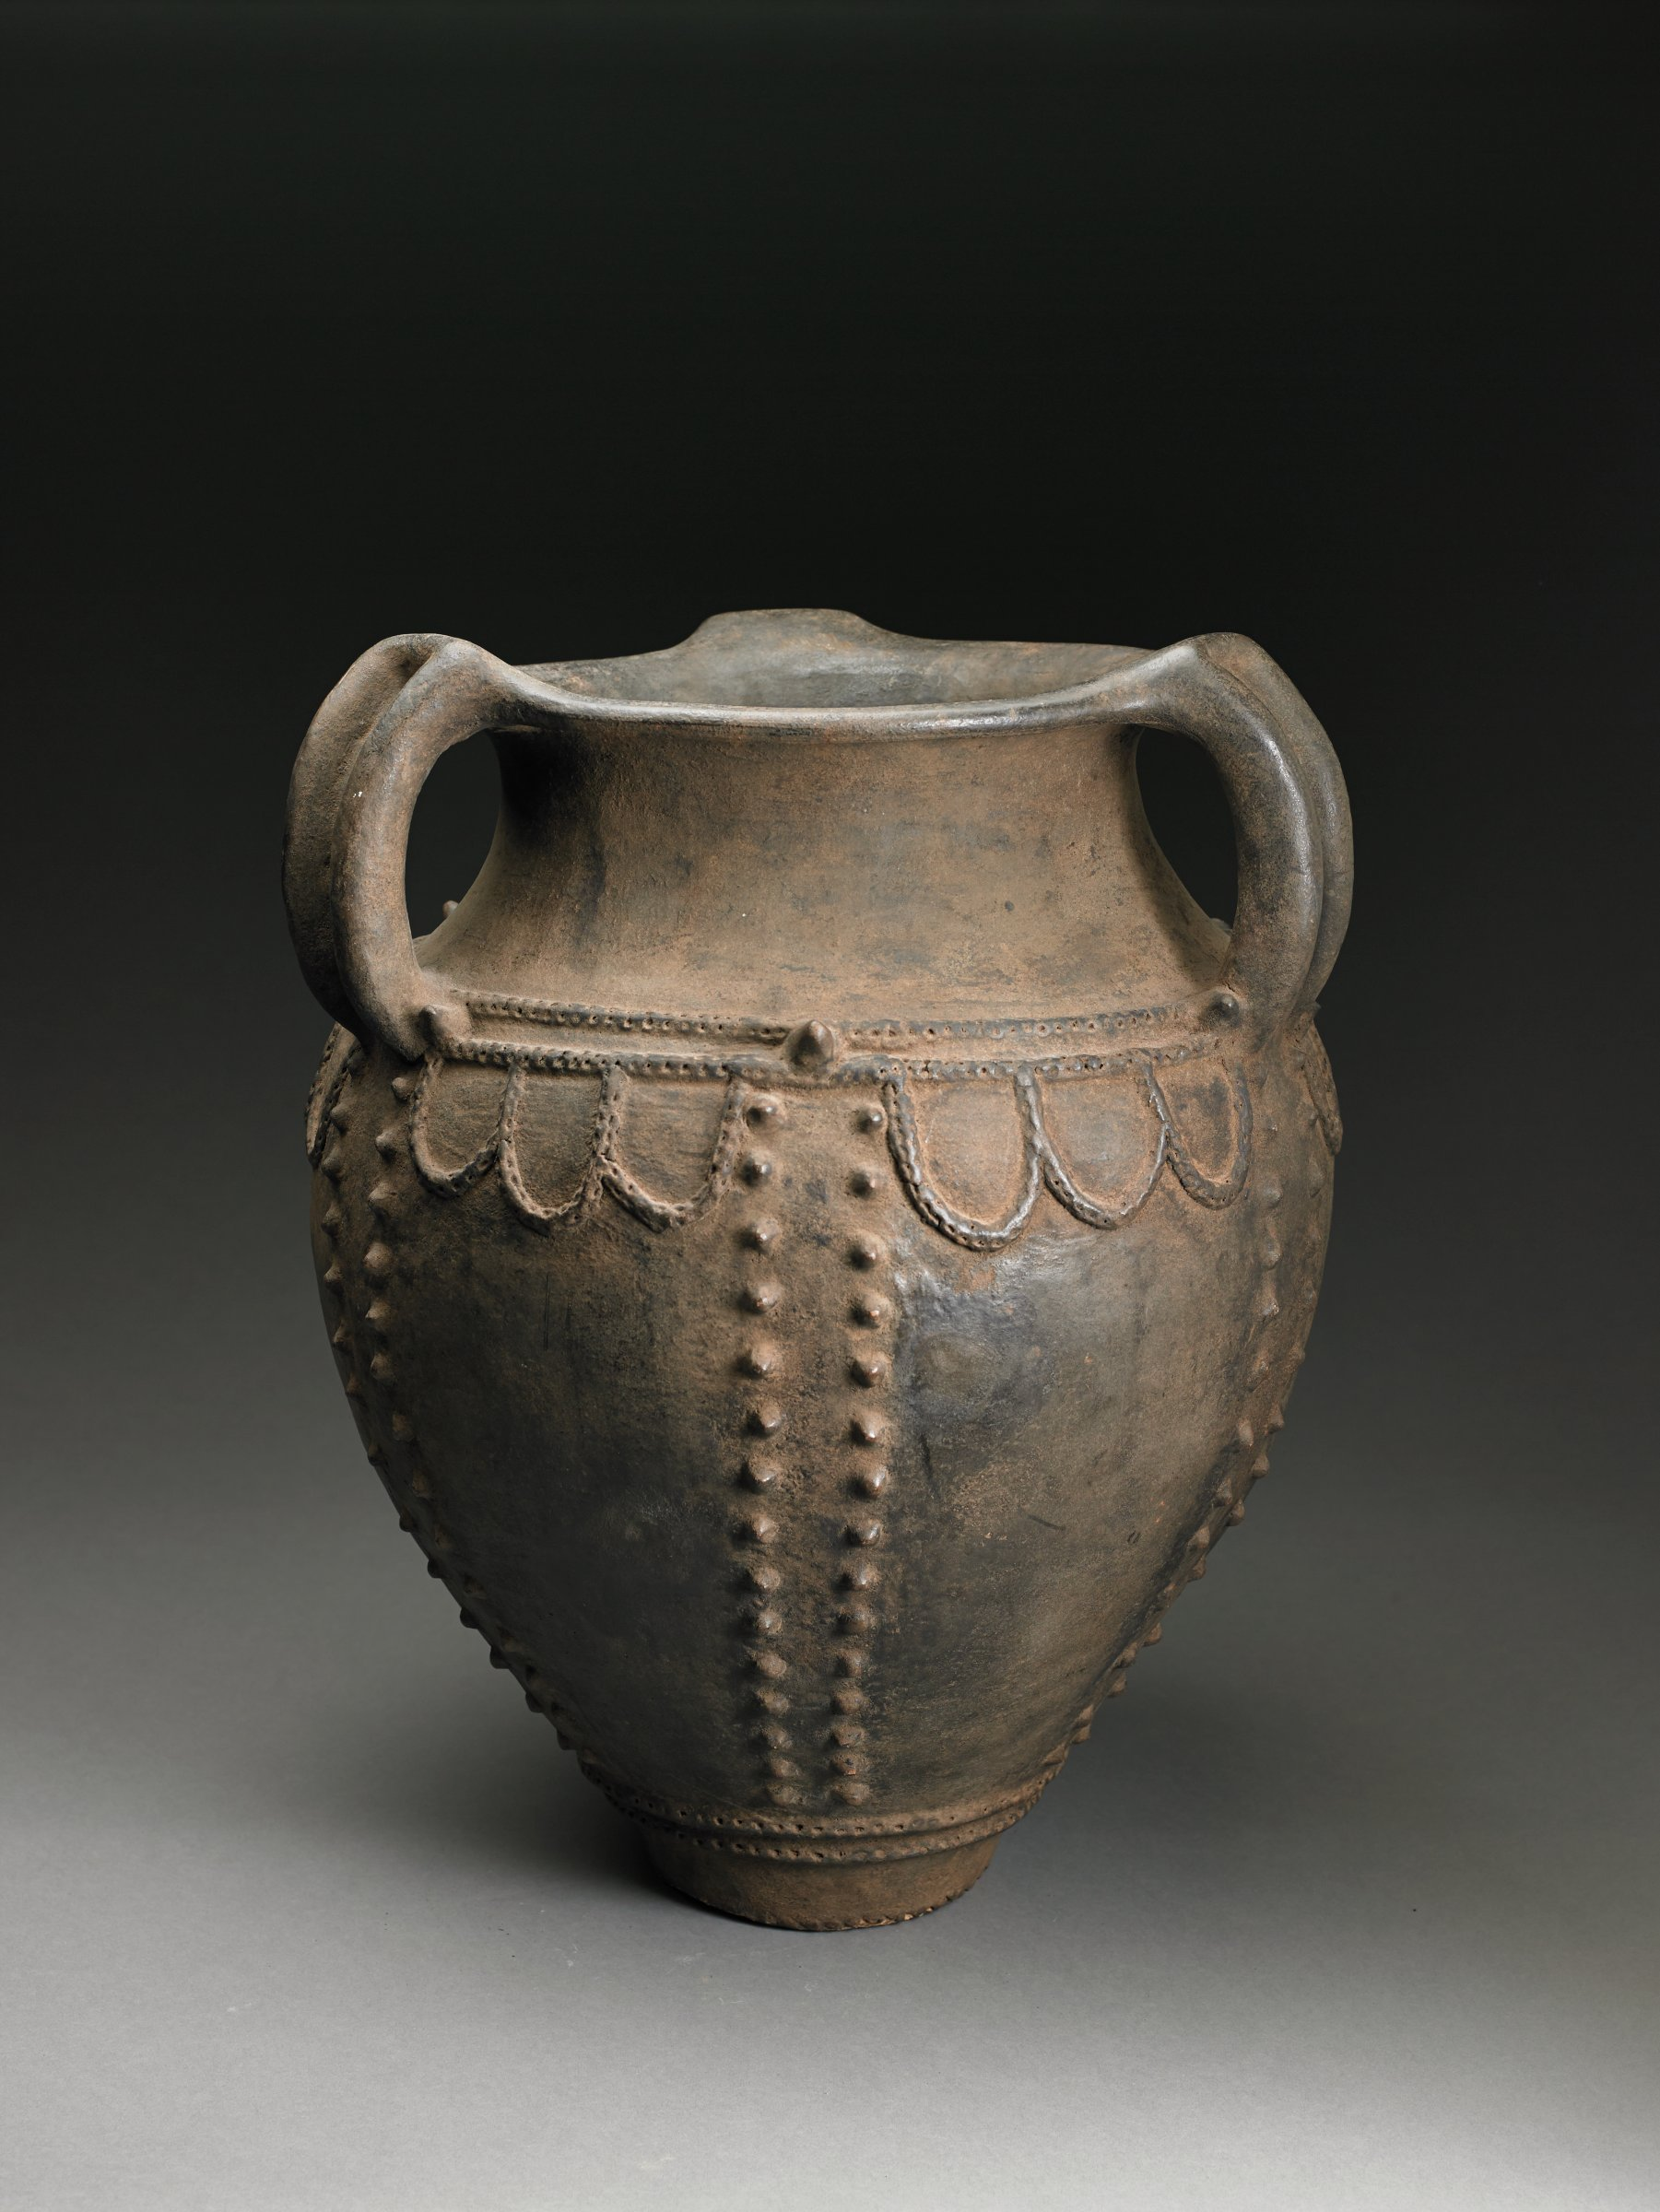 Blackish-brown amphora shaped vessel has narrow bottom and handles. Raised scalloped pattern descends from ridge at shoulder. Double vertical rows of raised dots connect shoulder to bottom of vessel at four places.